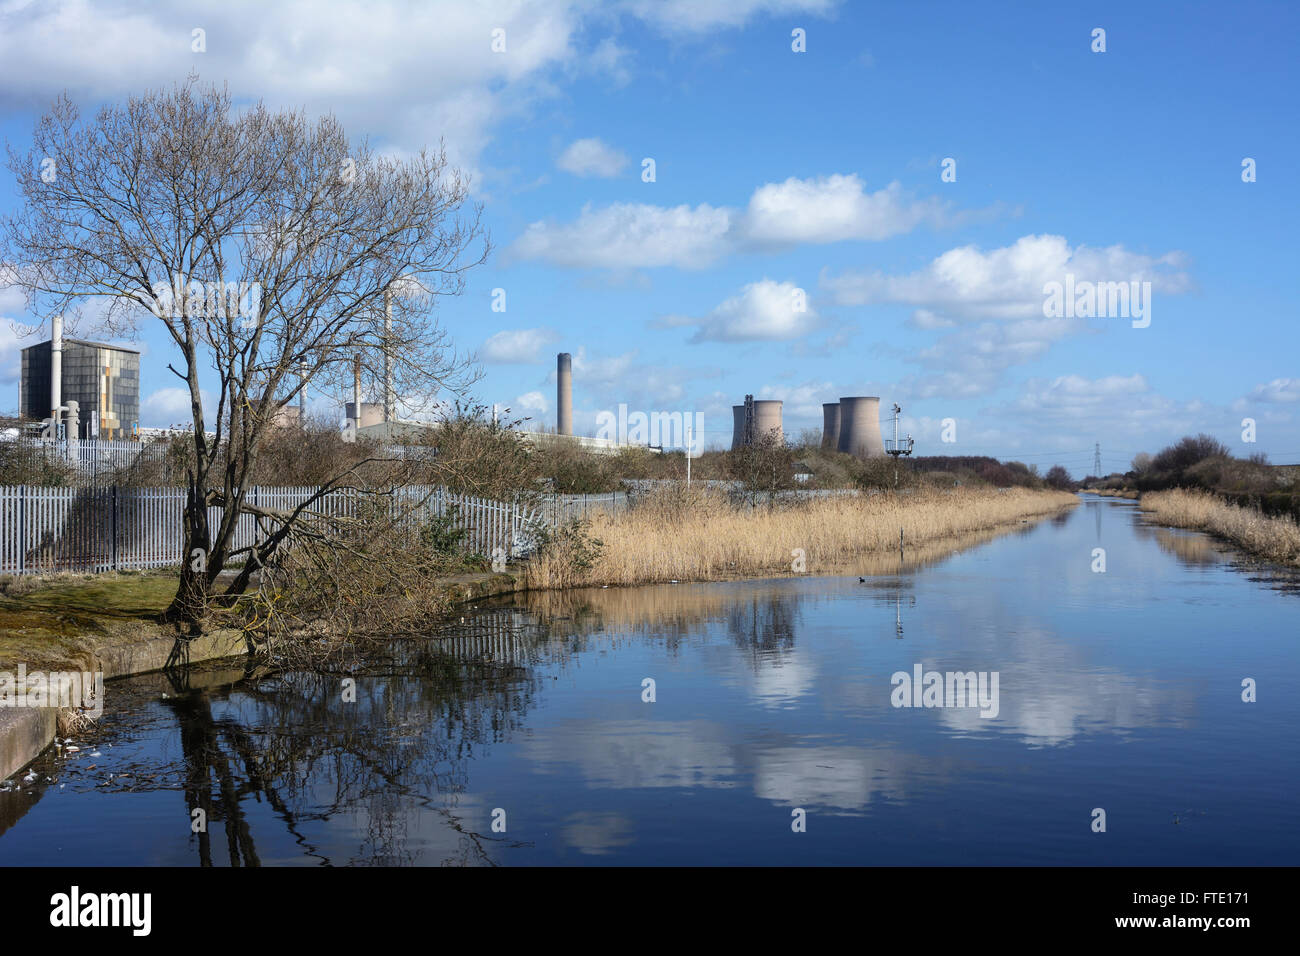 Sankey (St. Helens) Canal near Widnes which used to connect St. Helens to the River Mersey at West Bank, Widnes. Stock Photo